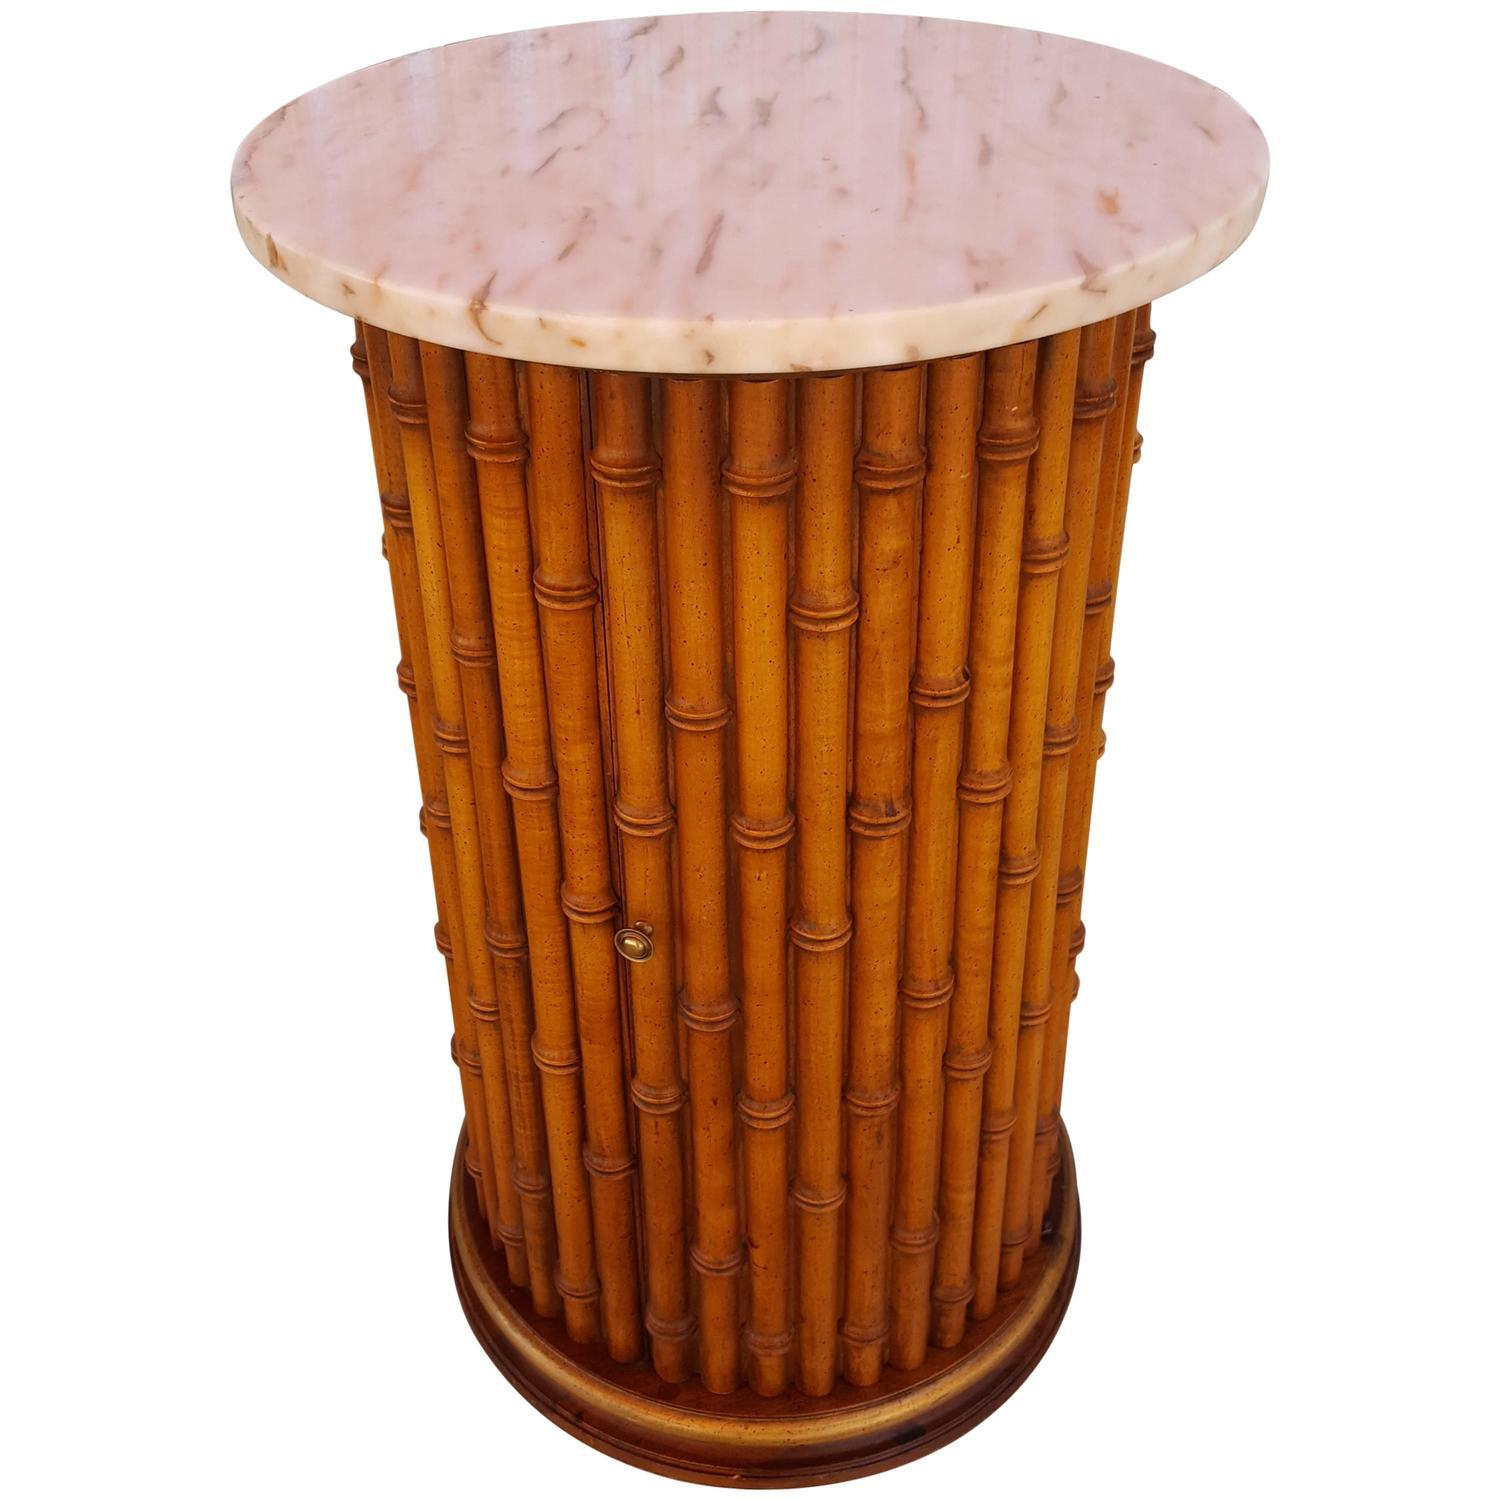 Bamboo furniture prices - Faux Bamboo Marble Topped Cylindrical End Table